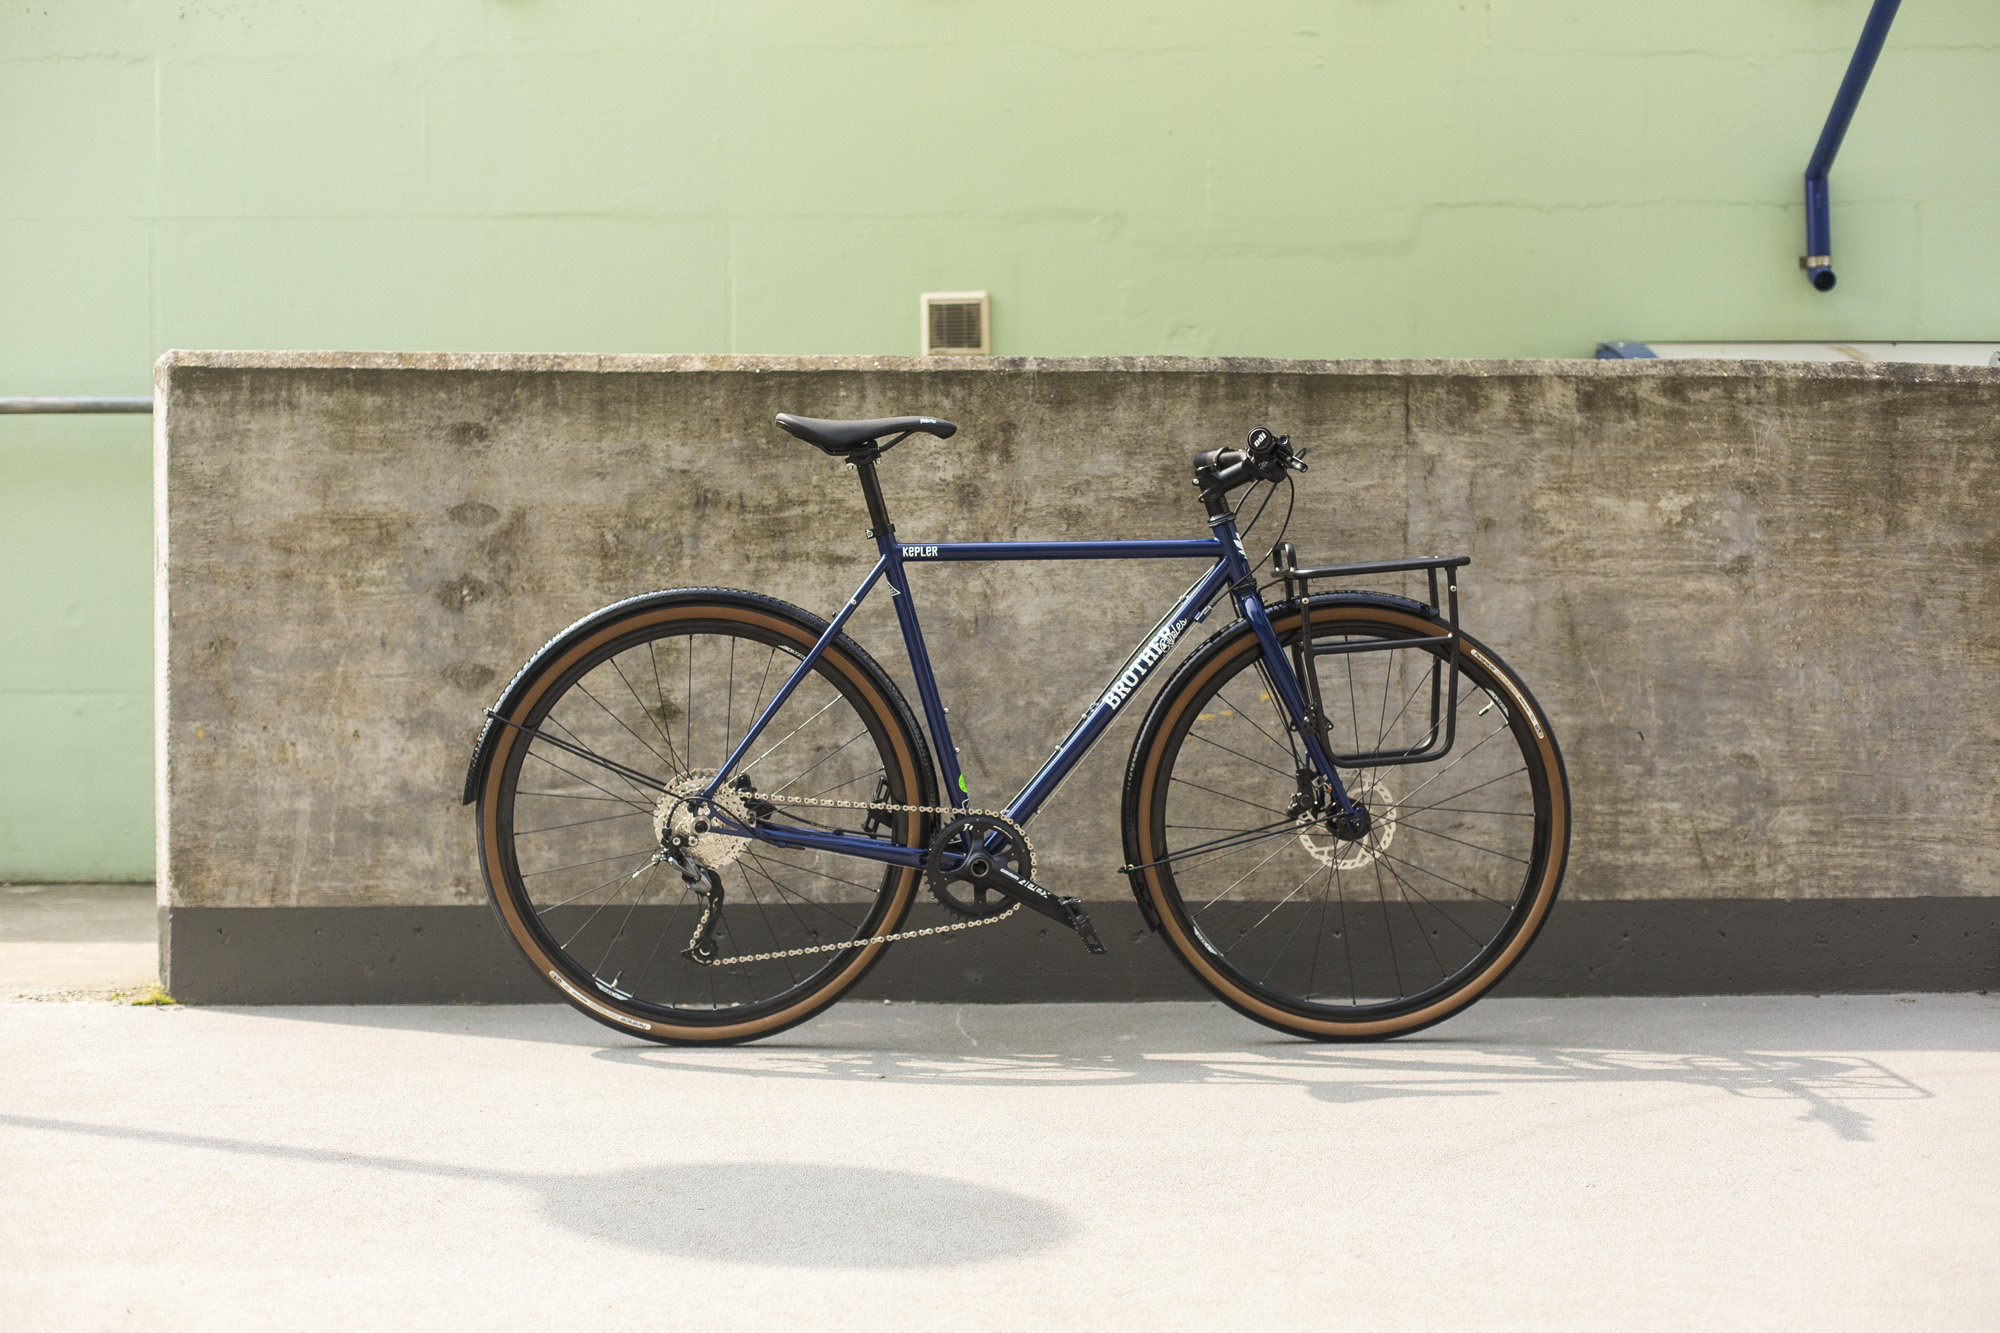 seabass-cycles-instore-bikes-17-april-2019-brother-cycles-kepler-disc-custom-build-midnight-blue-5067.jpg